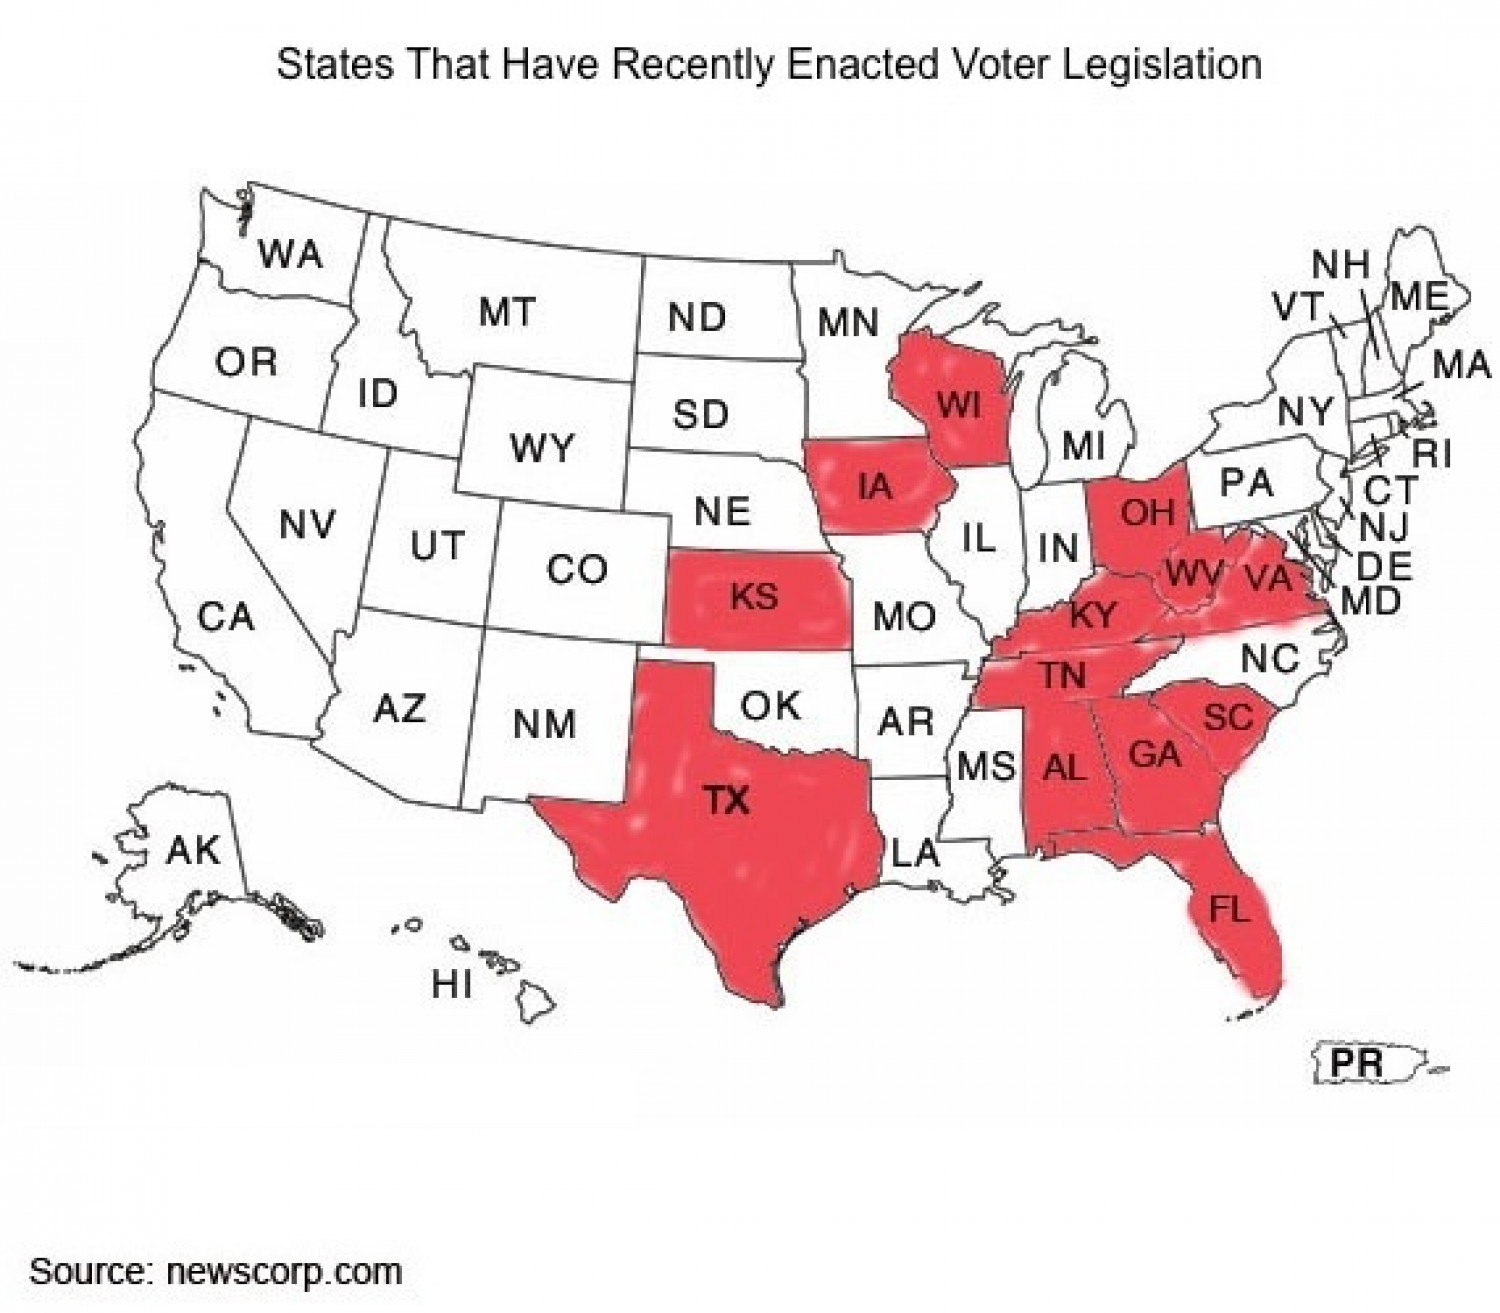 States With Voter Legislation Infographic